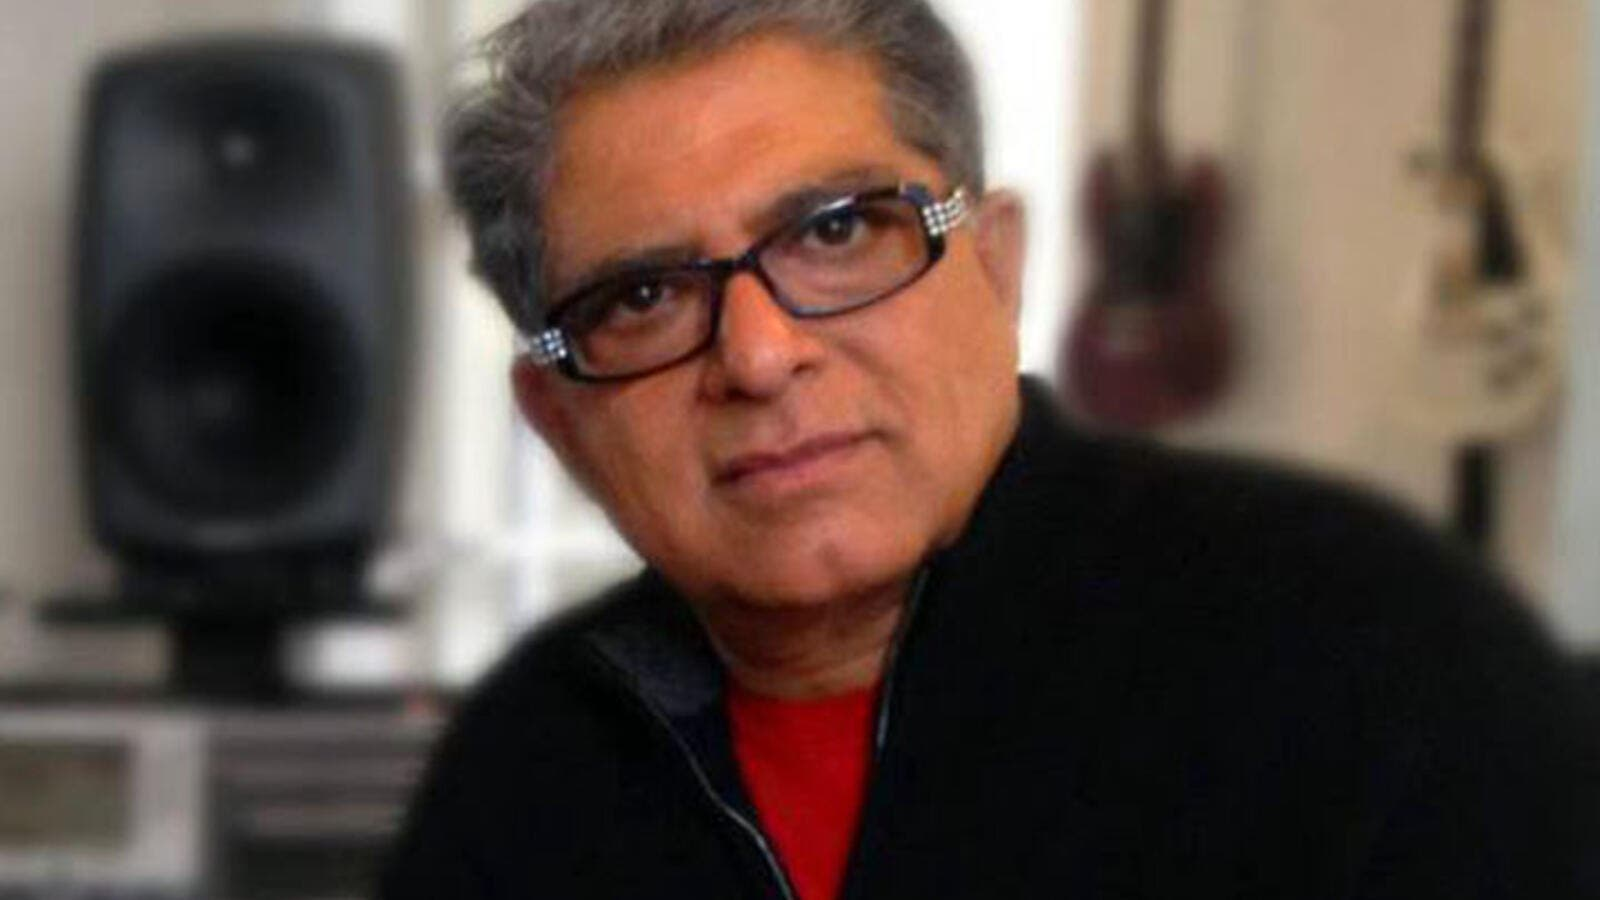 Deepak Chopra will be dishing out advice at his UAE appearances this week. (Image: Facebook)